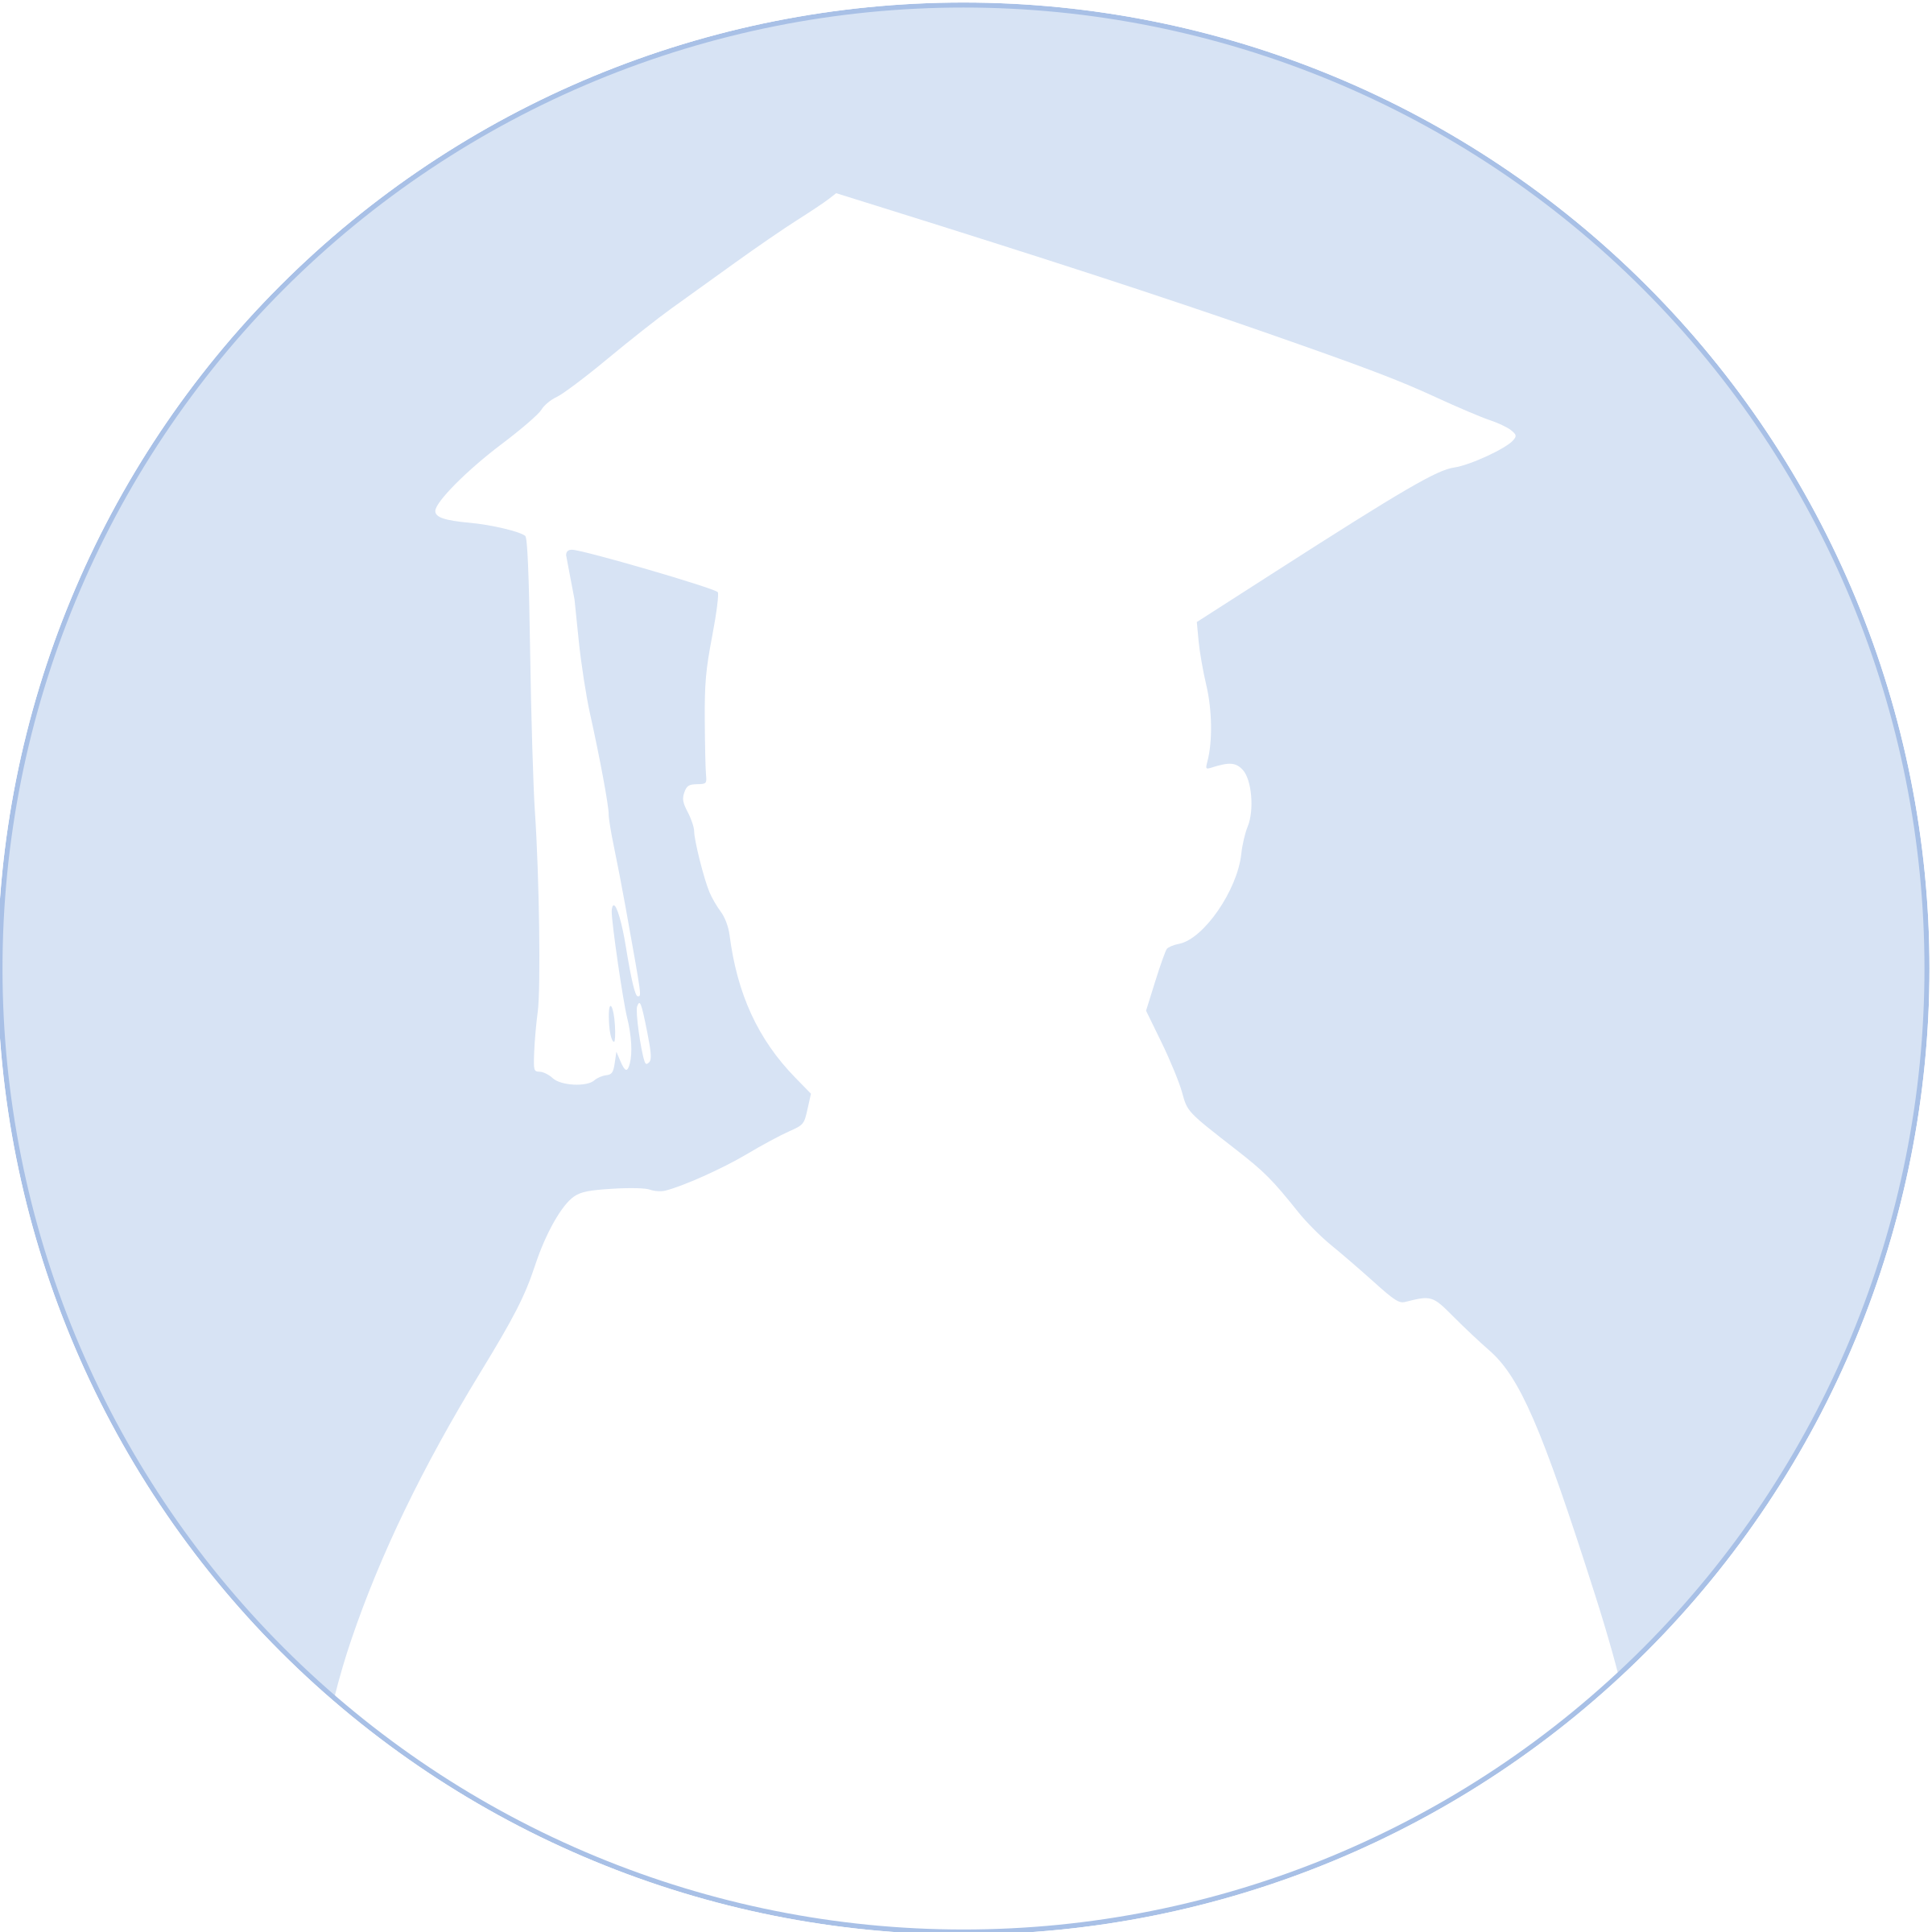 Graduation Boy Profile Circle Silhouette by Maiconfz